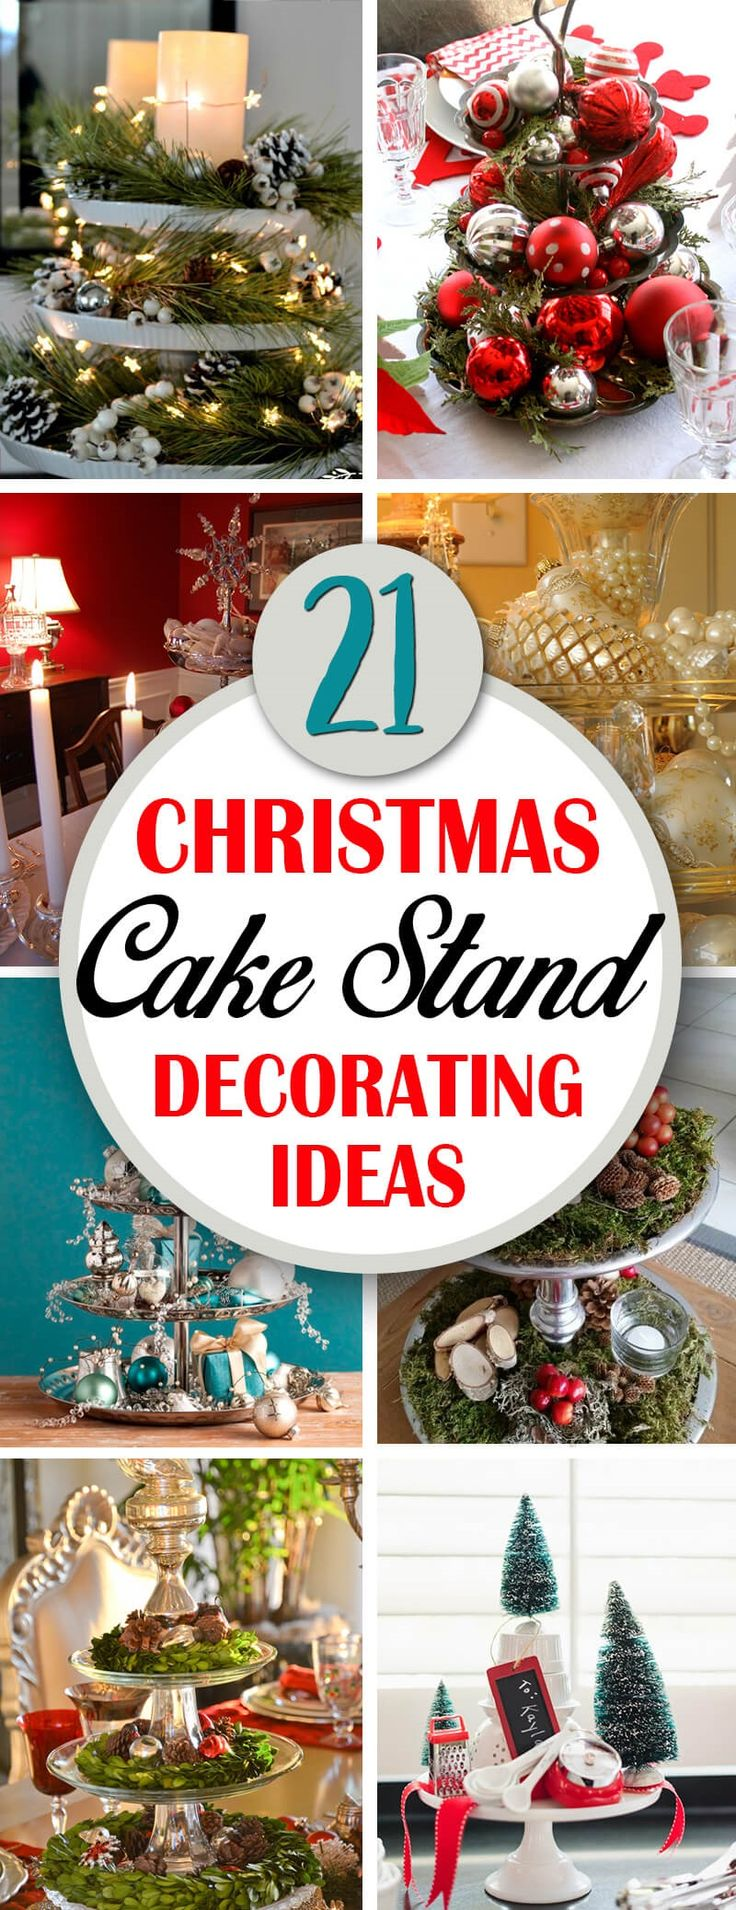 Christmas is coming! Whether those words fill you with delight or dread, it's time to start thinking about decorating. If you're short on time and still want a festive atmosphere, consider creating Christmas cake stand decorations. Take your Holiday Decorating to the Next Level with Christmas Ca...